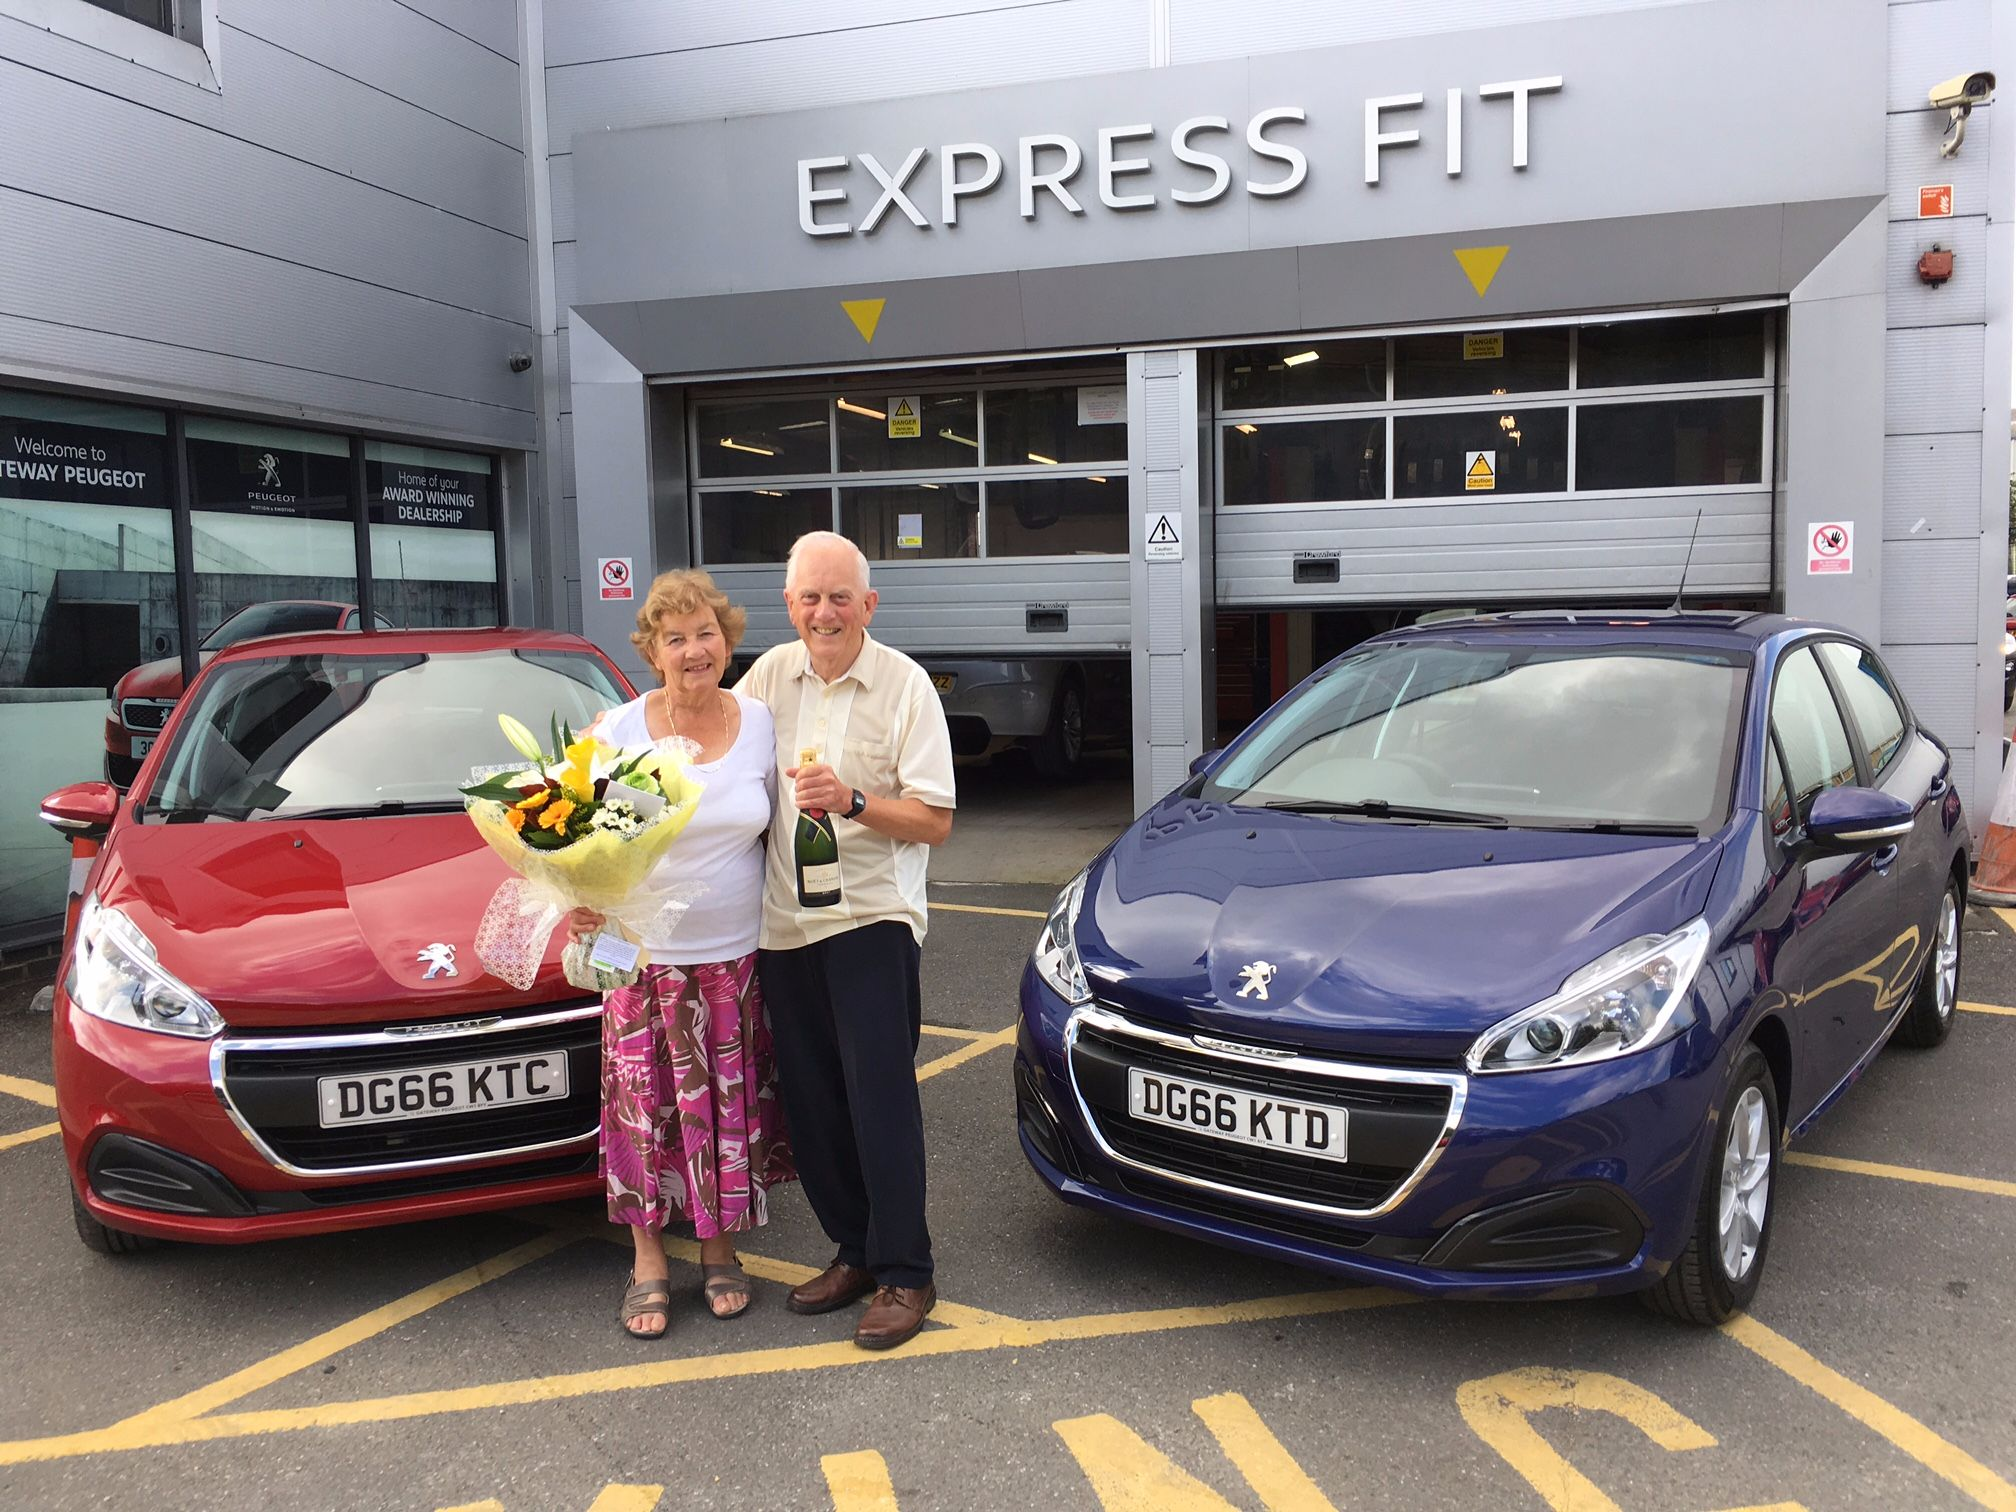 Golden wedding celebration at Gateway Peugeot Crewe!